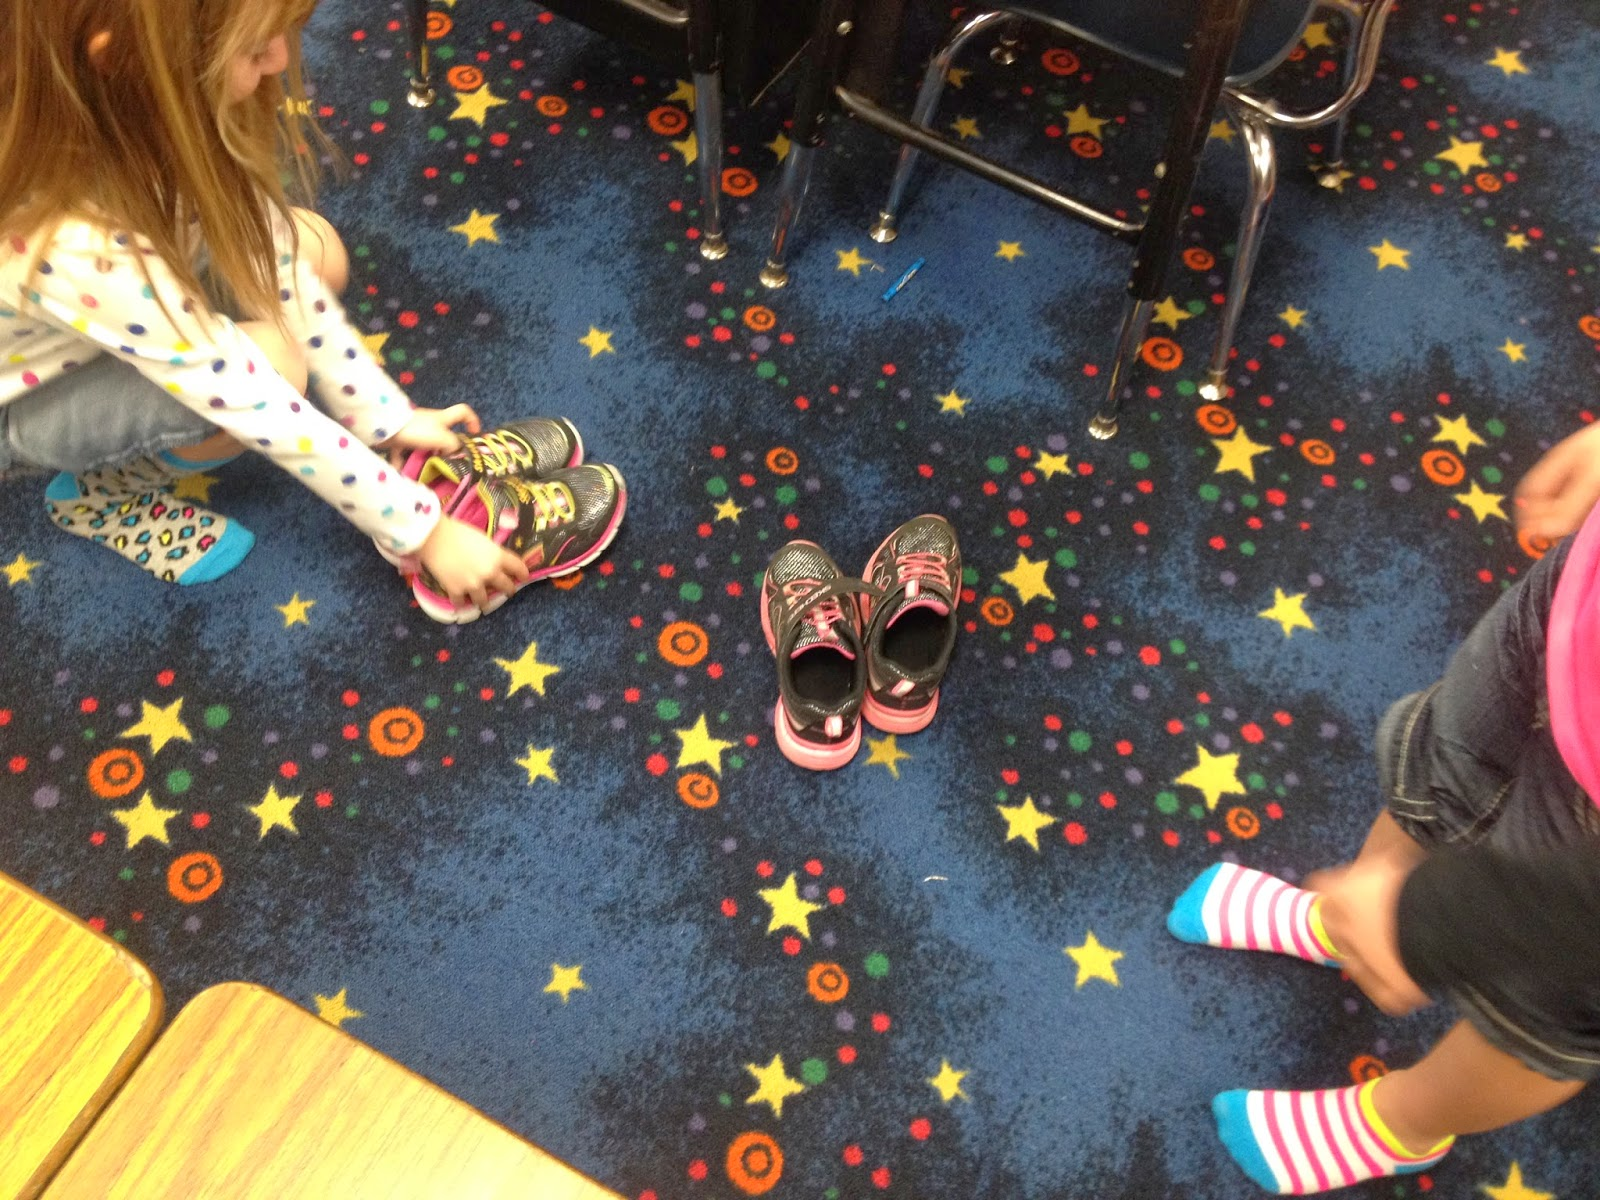 Guest blog post from Faith at Kindergarten Faith who talks about Telling Time With Boots in the classroom today!